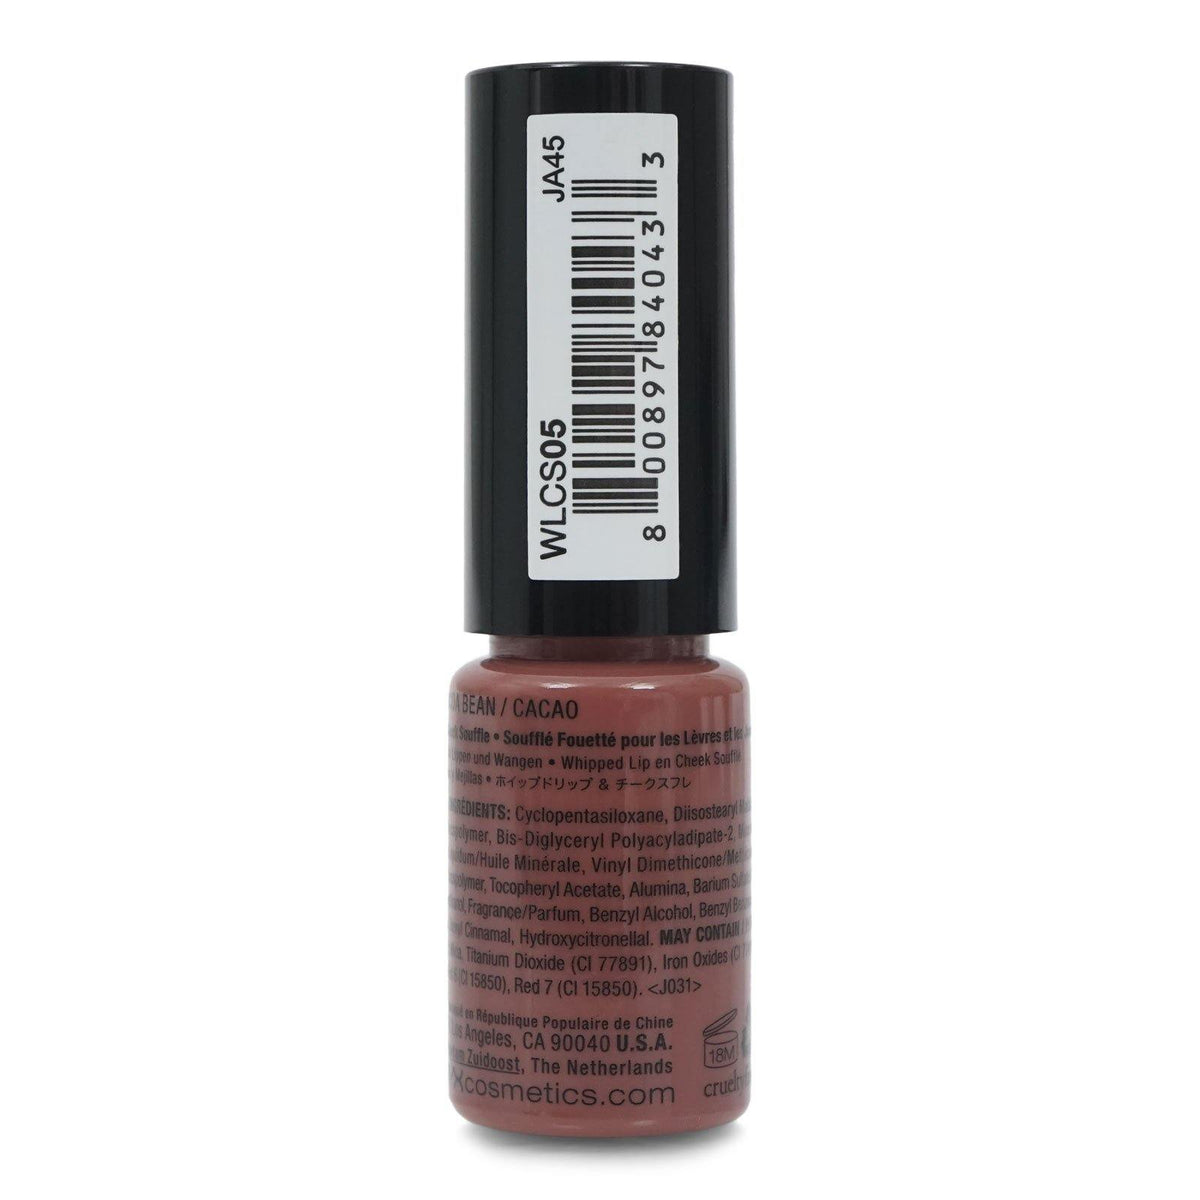 NYX WHIPPED LIP & CHEEK SOUFFLE- COCOA BEAN (24/cs)